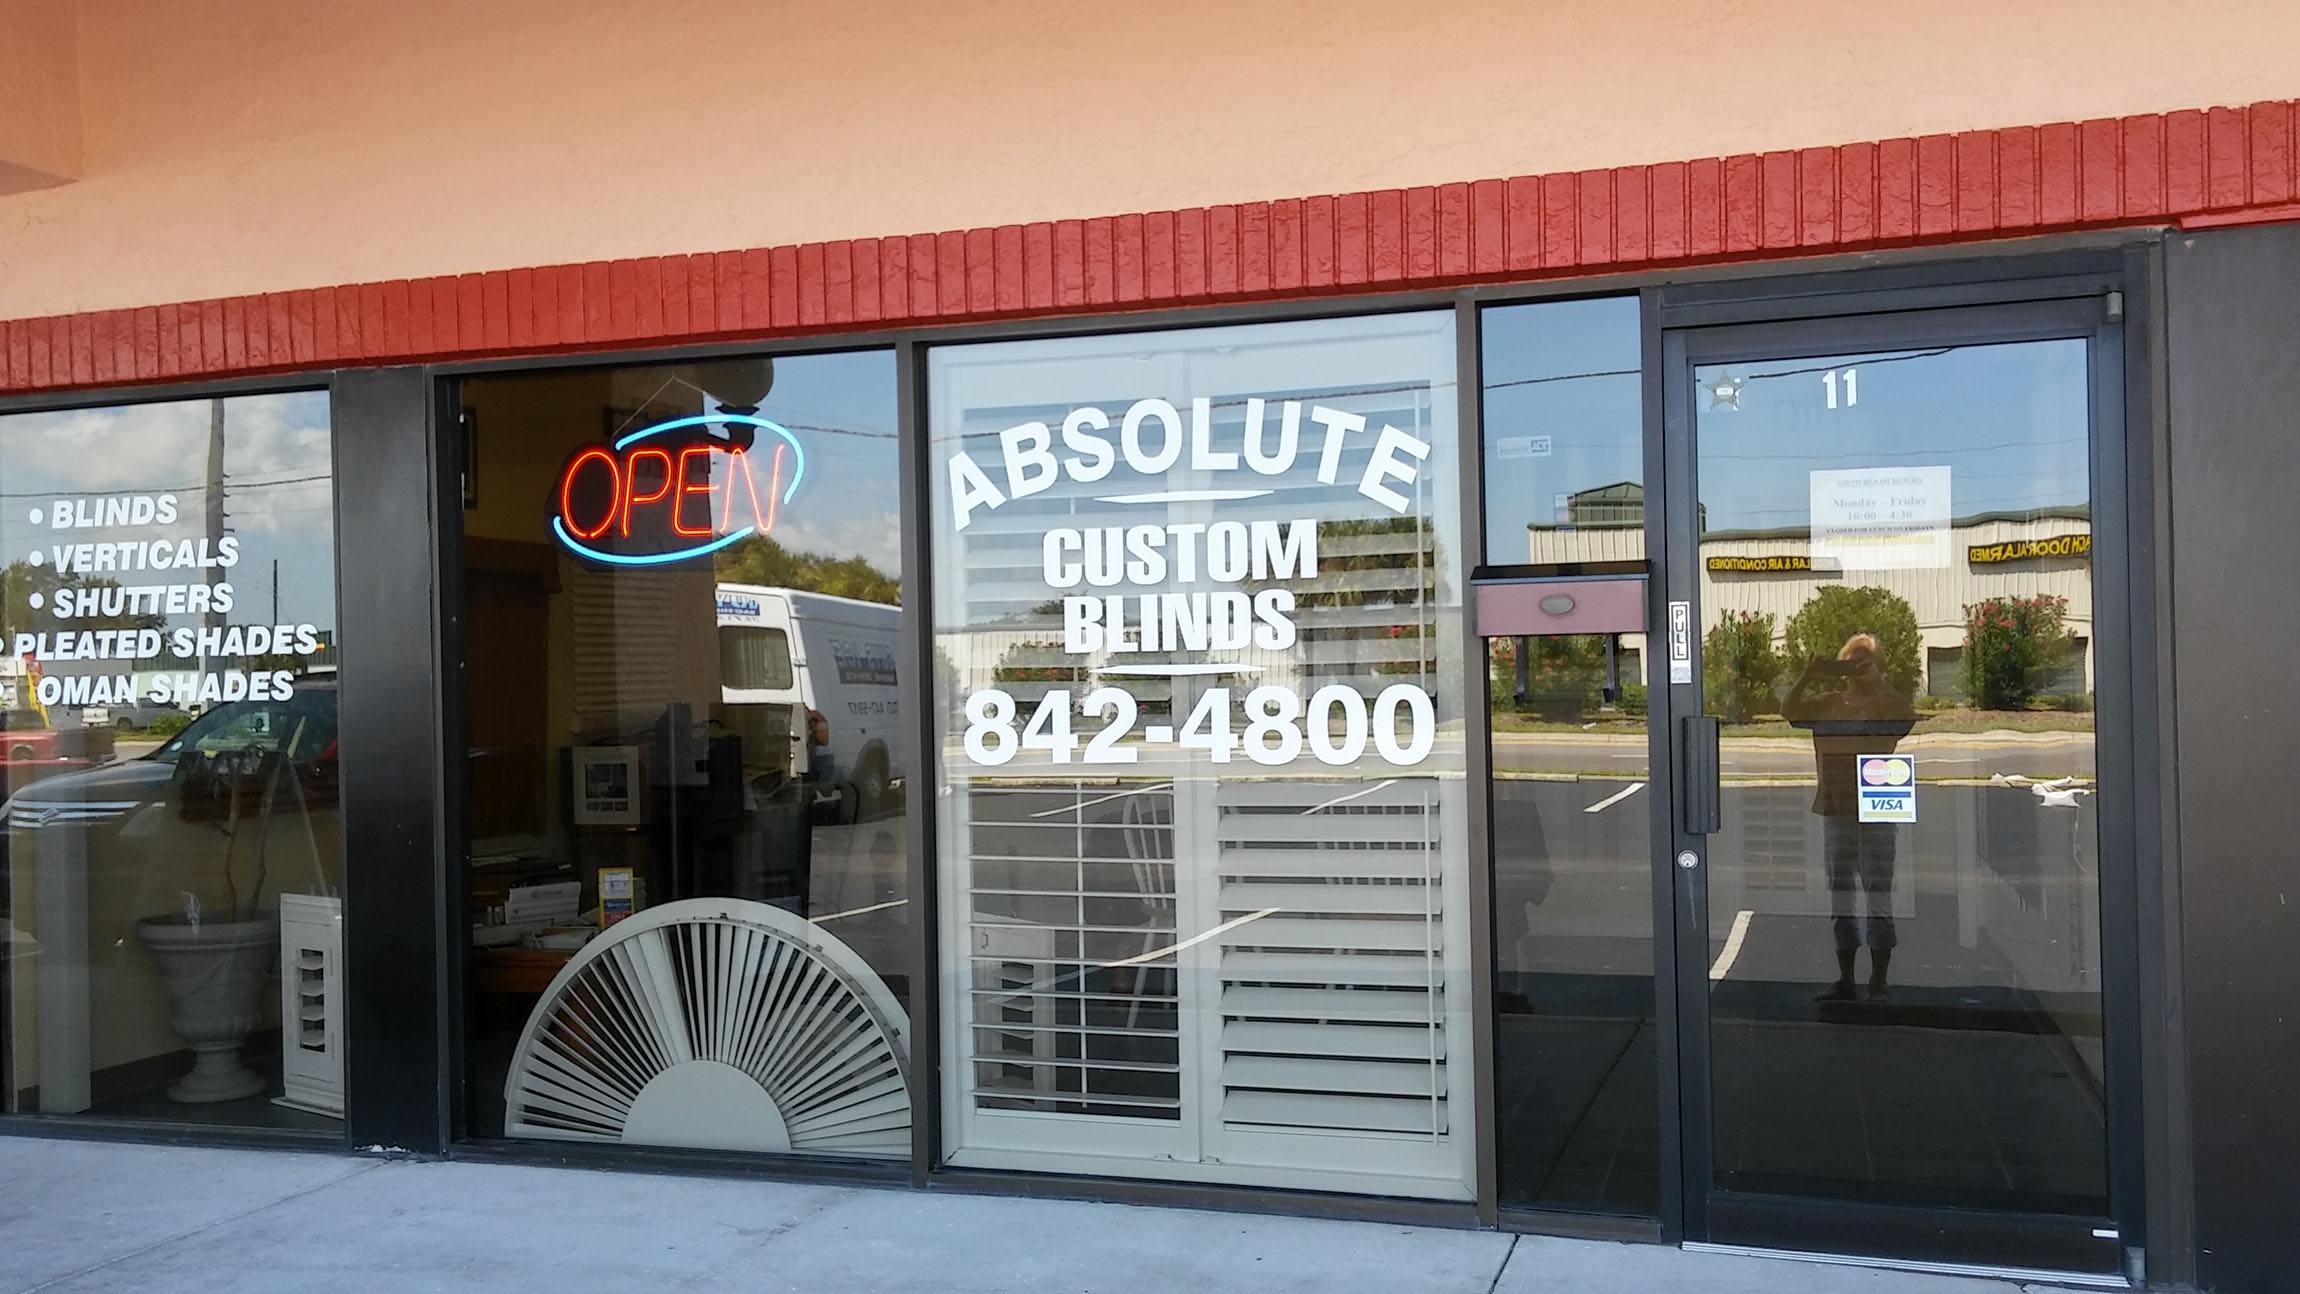 Absolute Custom Blinds Storefront